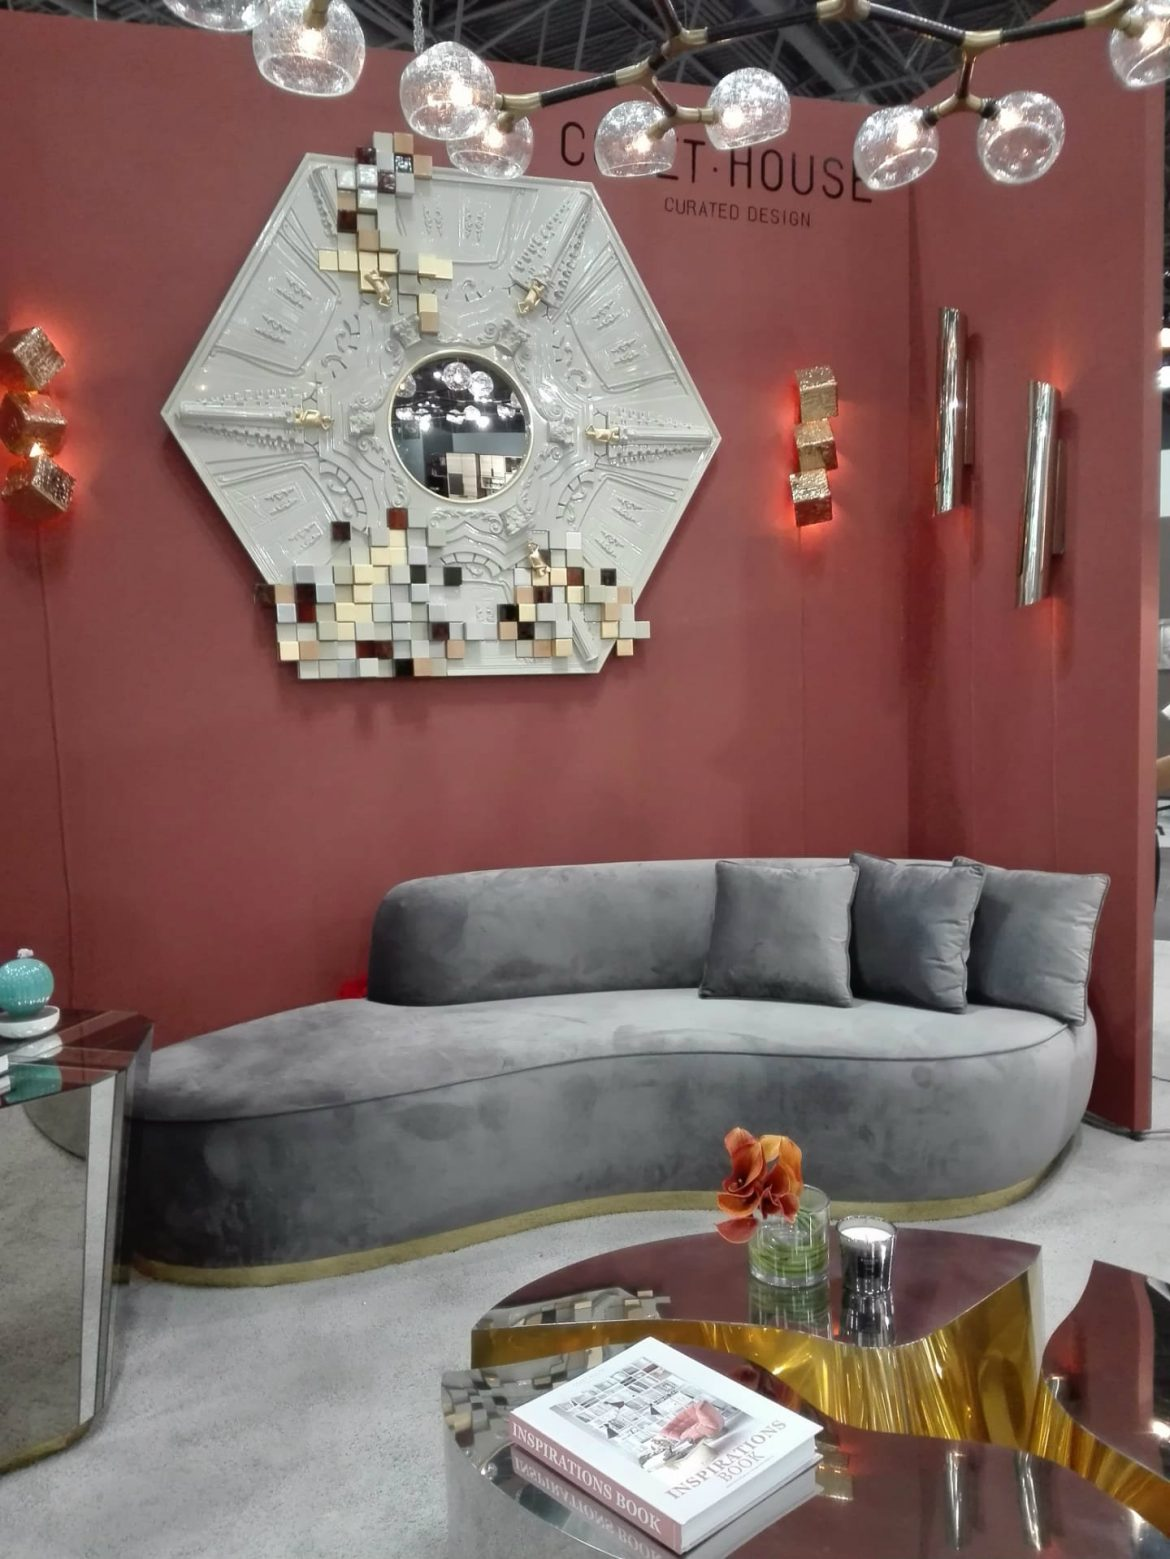 The Best Of ICFF 2019 icff 2019 The Best Of ICFF 2019 The Best Off ICFF 2019 1